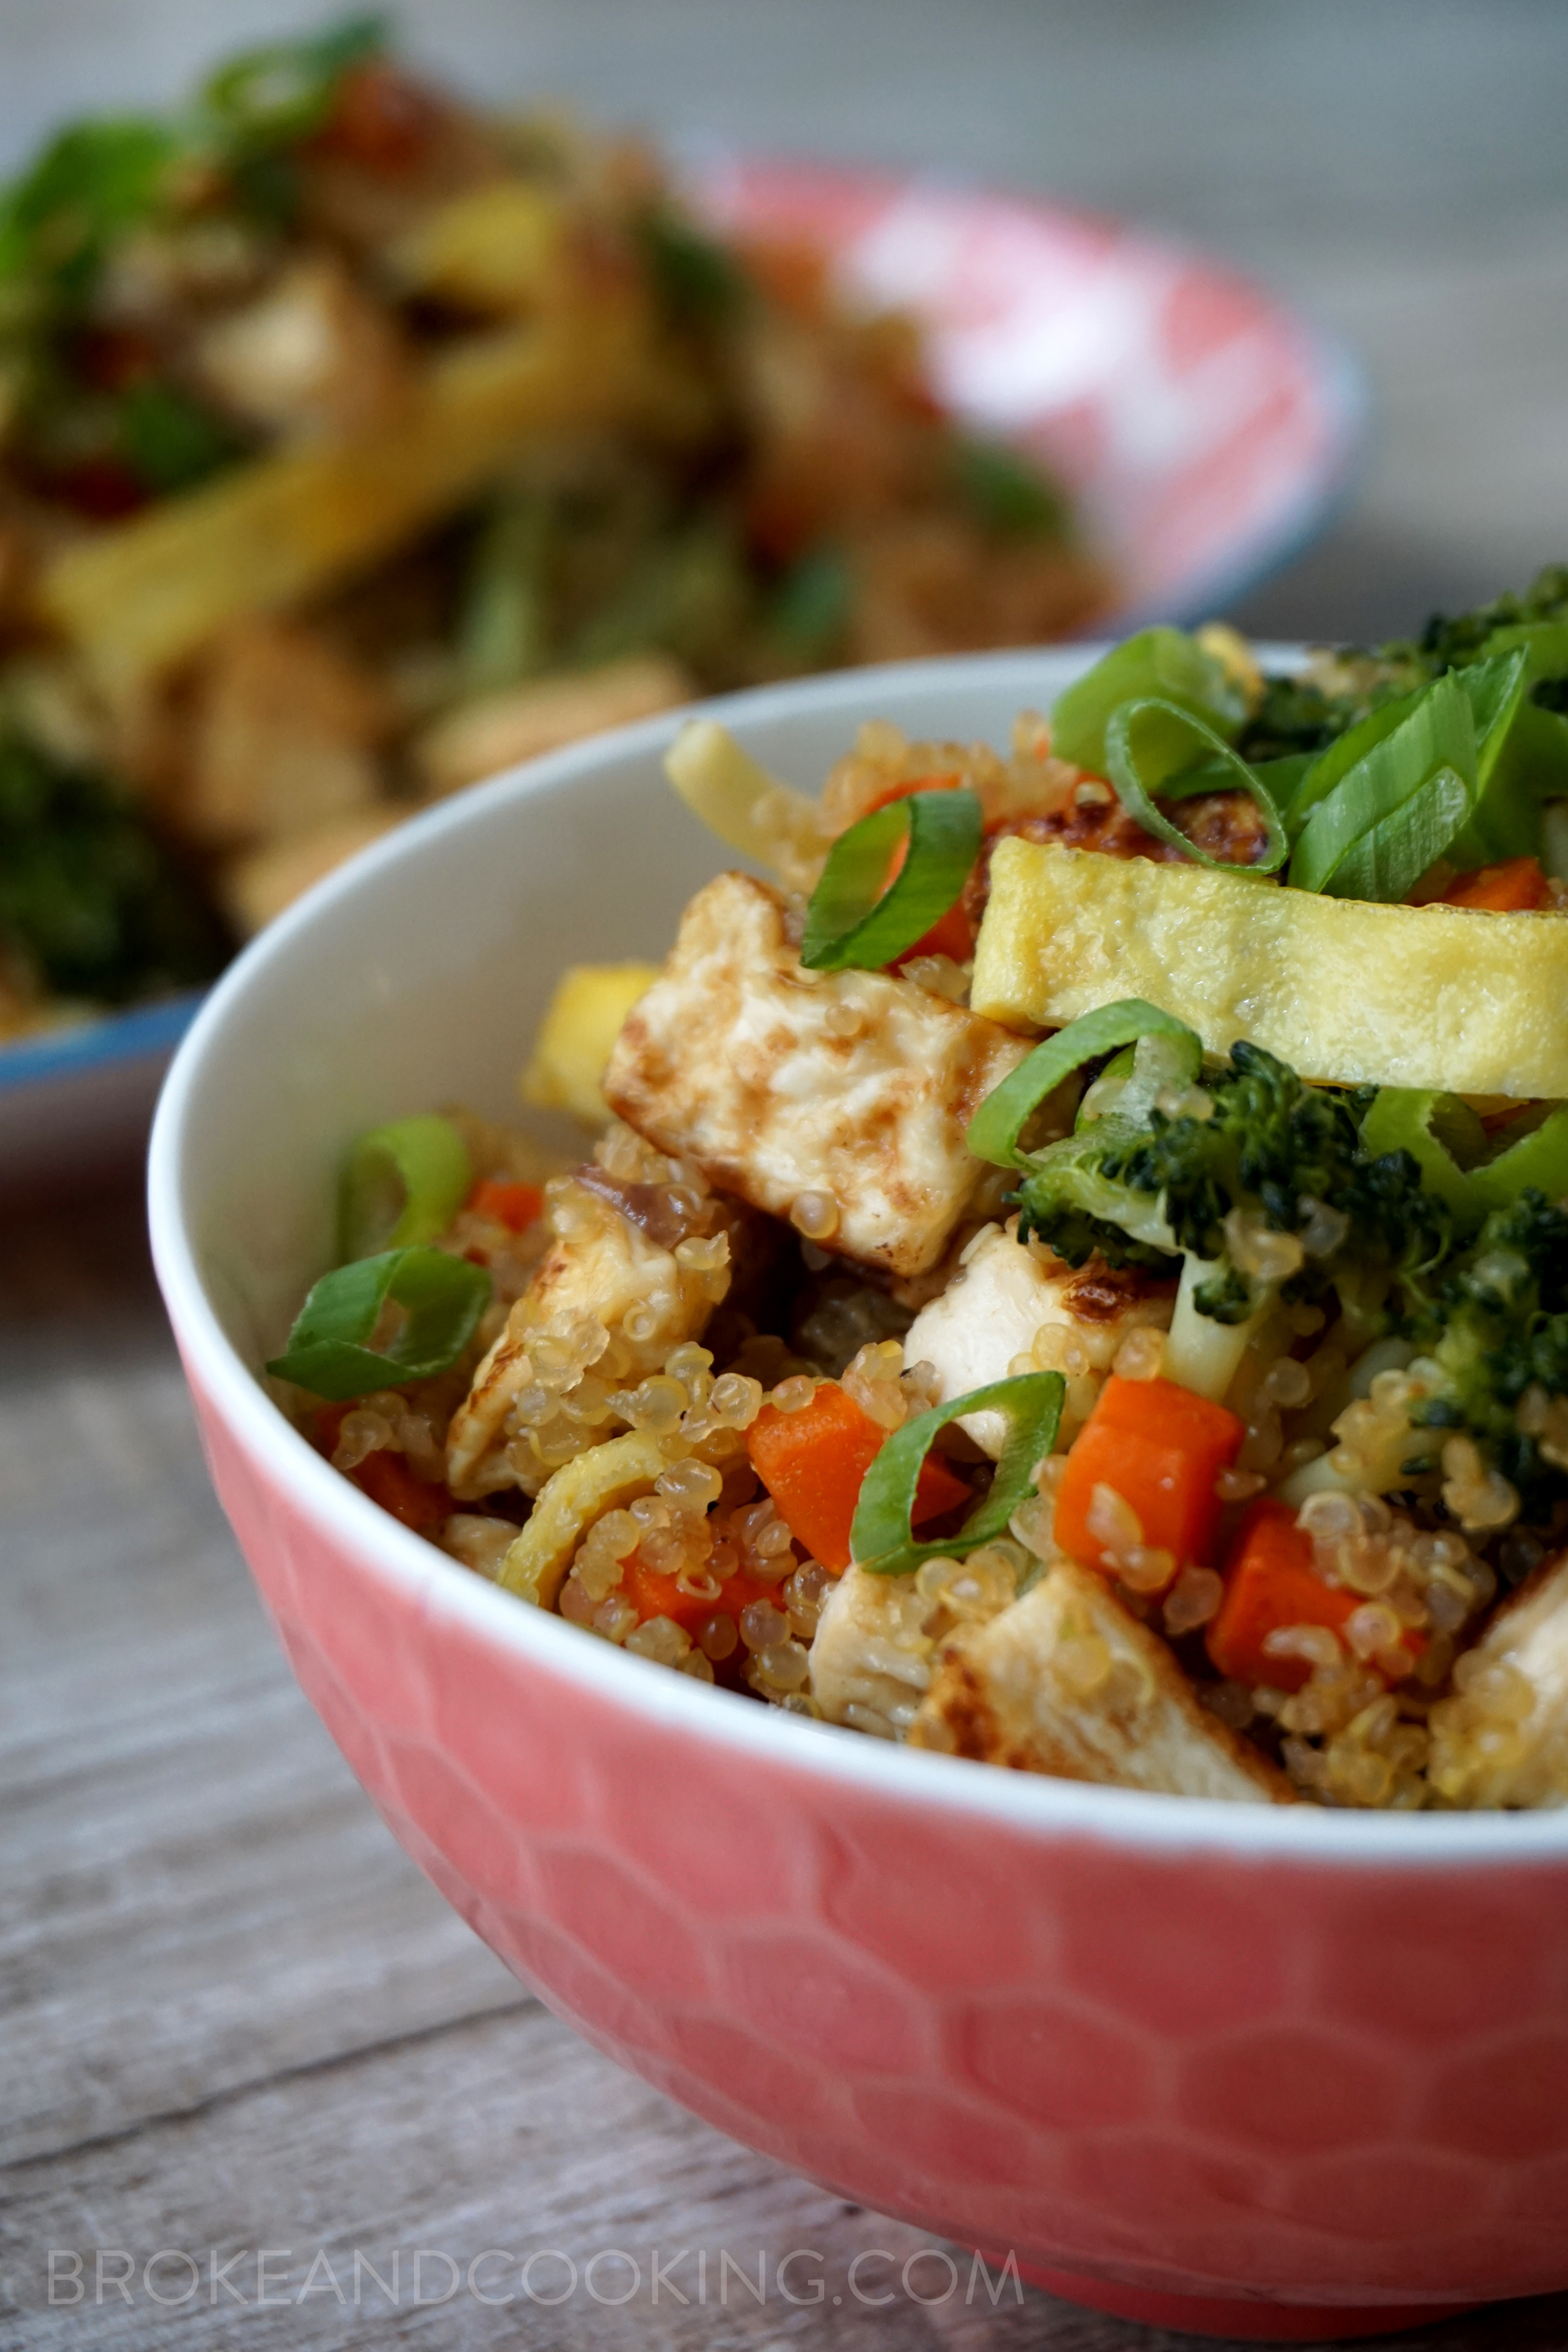 Broke and Cooking Quinoa Fried Rice 24